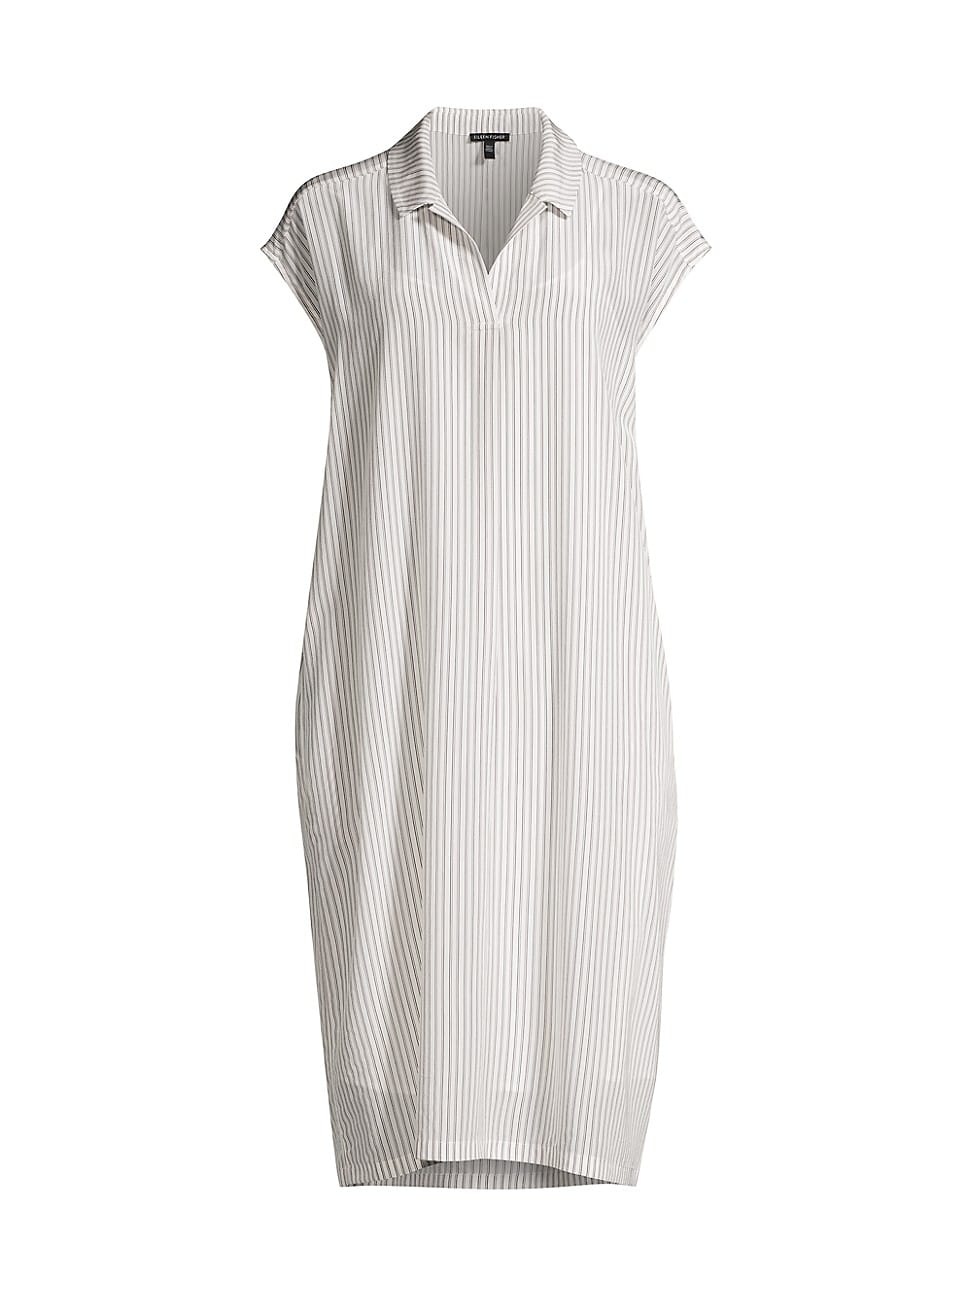 EILEEN FISHER WOMEN'S STRIPED COLLARED SILK DRESS